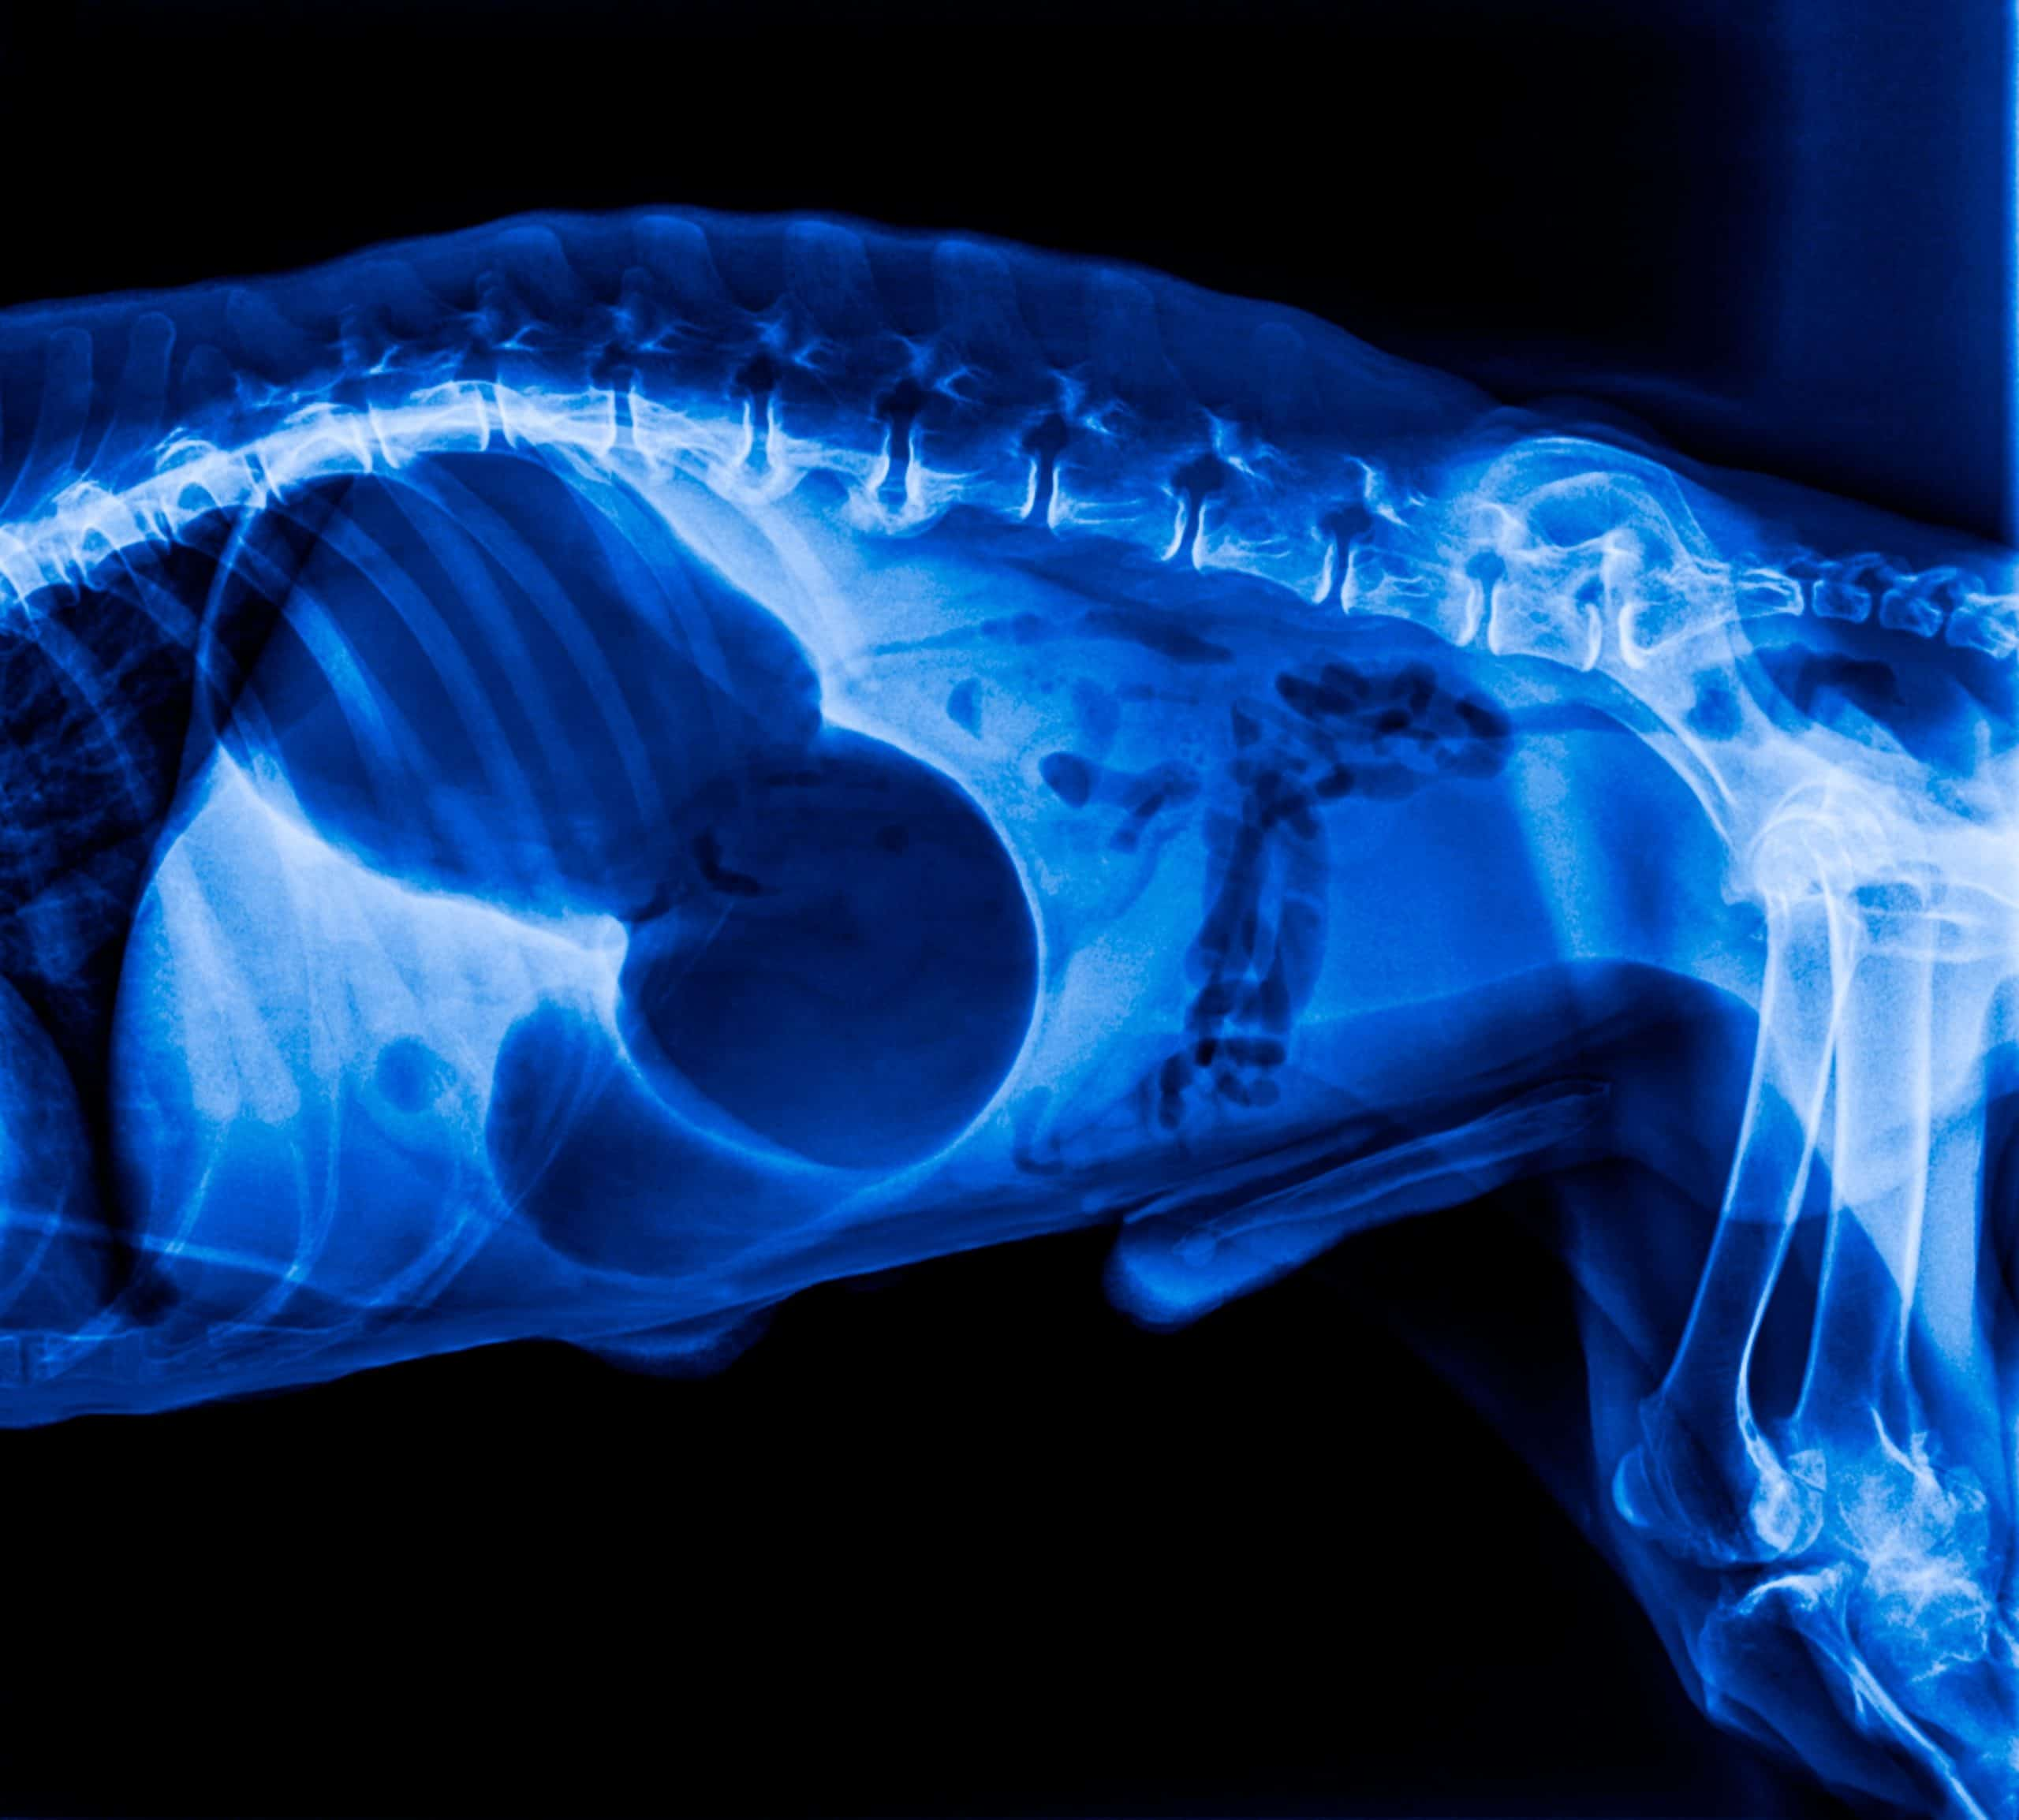 X-ray shows canine bloat otherwise known as a twisted stomach or Gastric Dilatation Volvulus.